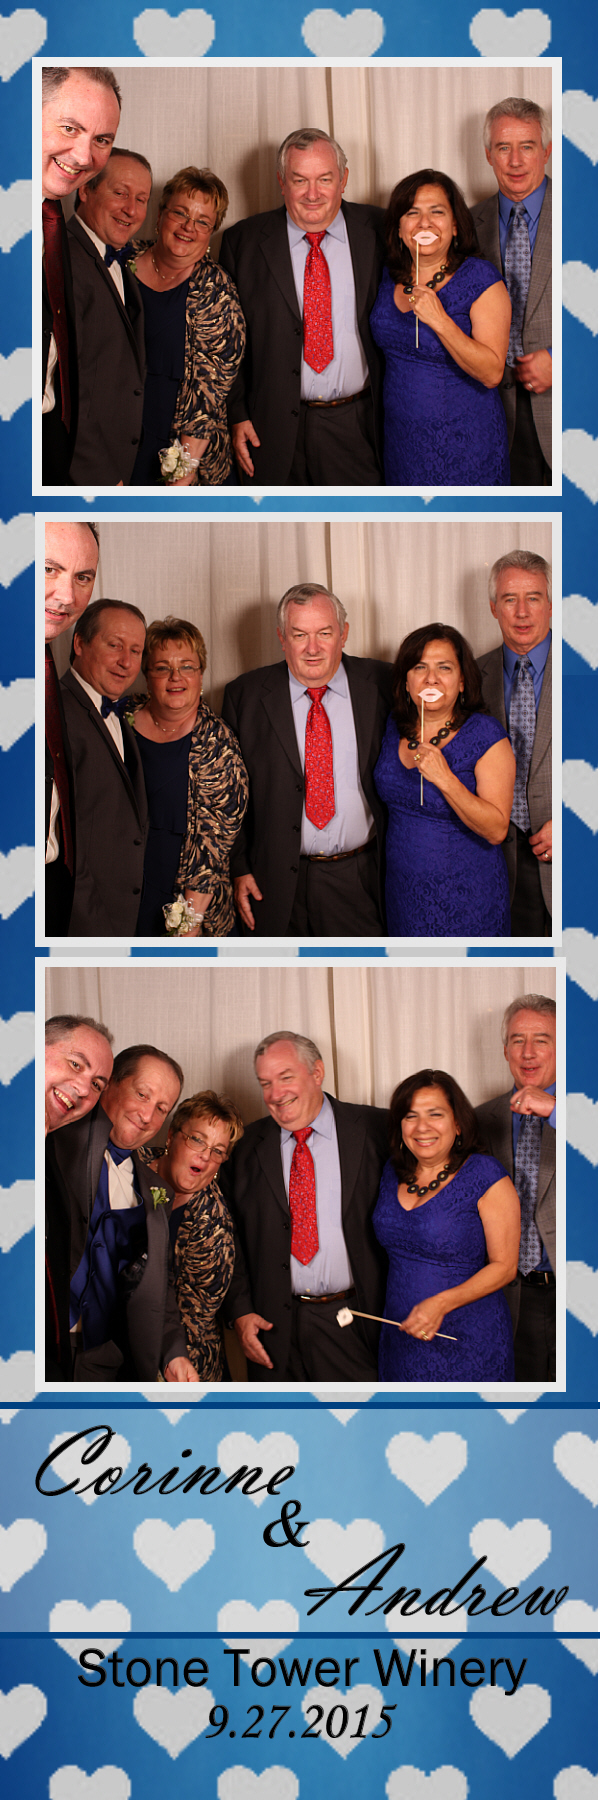 Guest House Events Photo Booth C&A (36).jpg